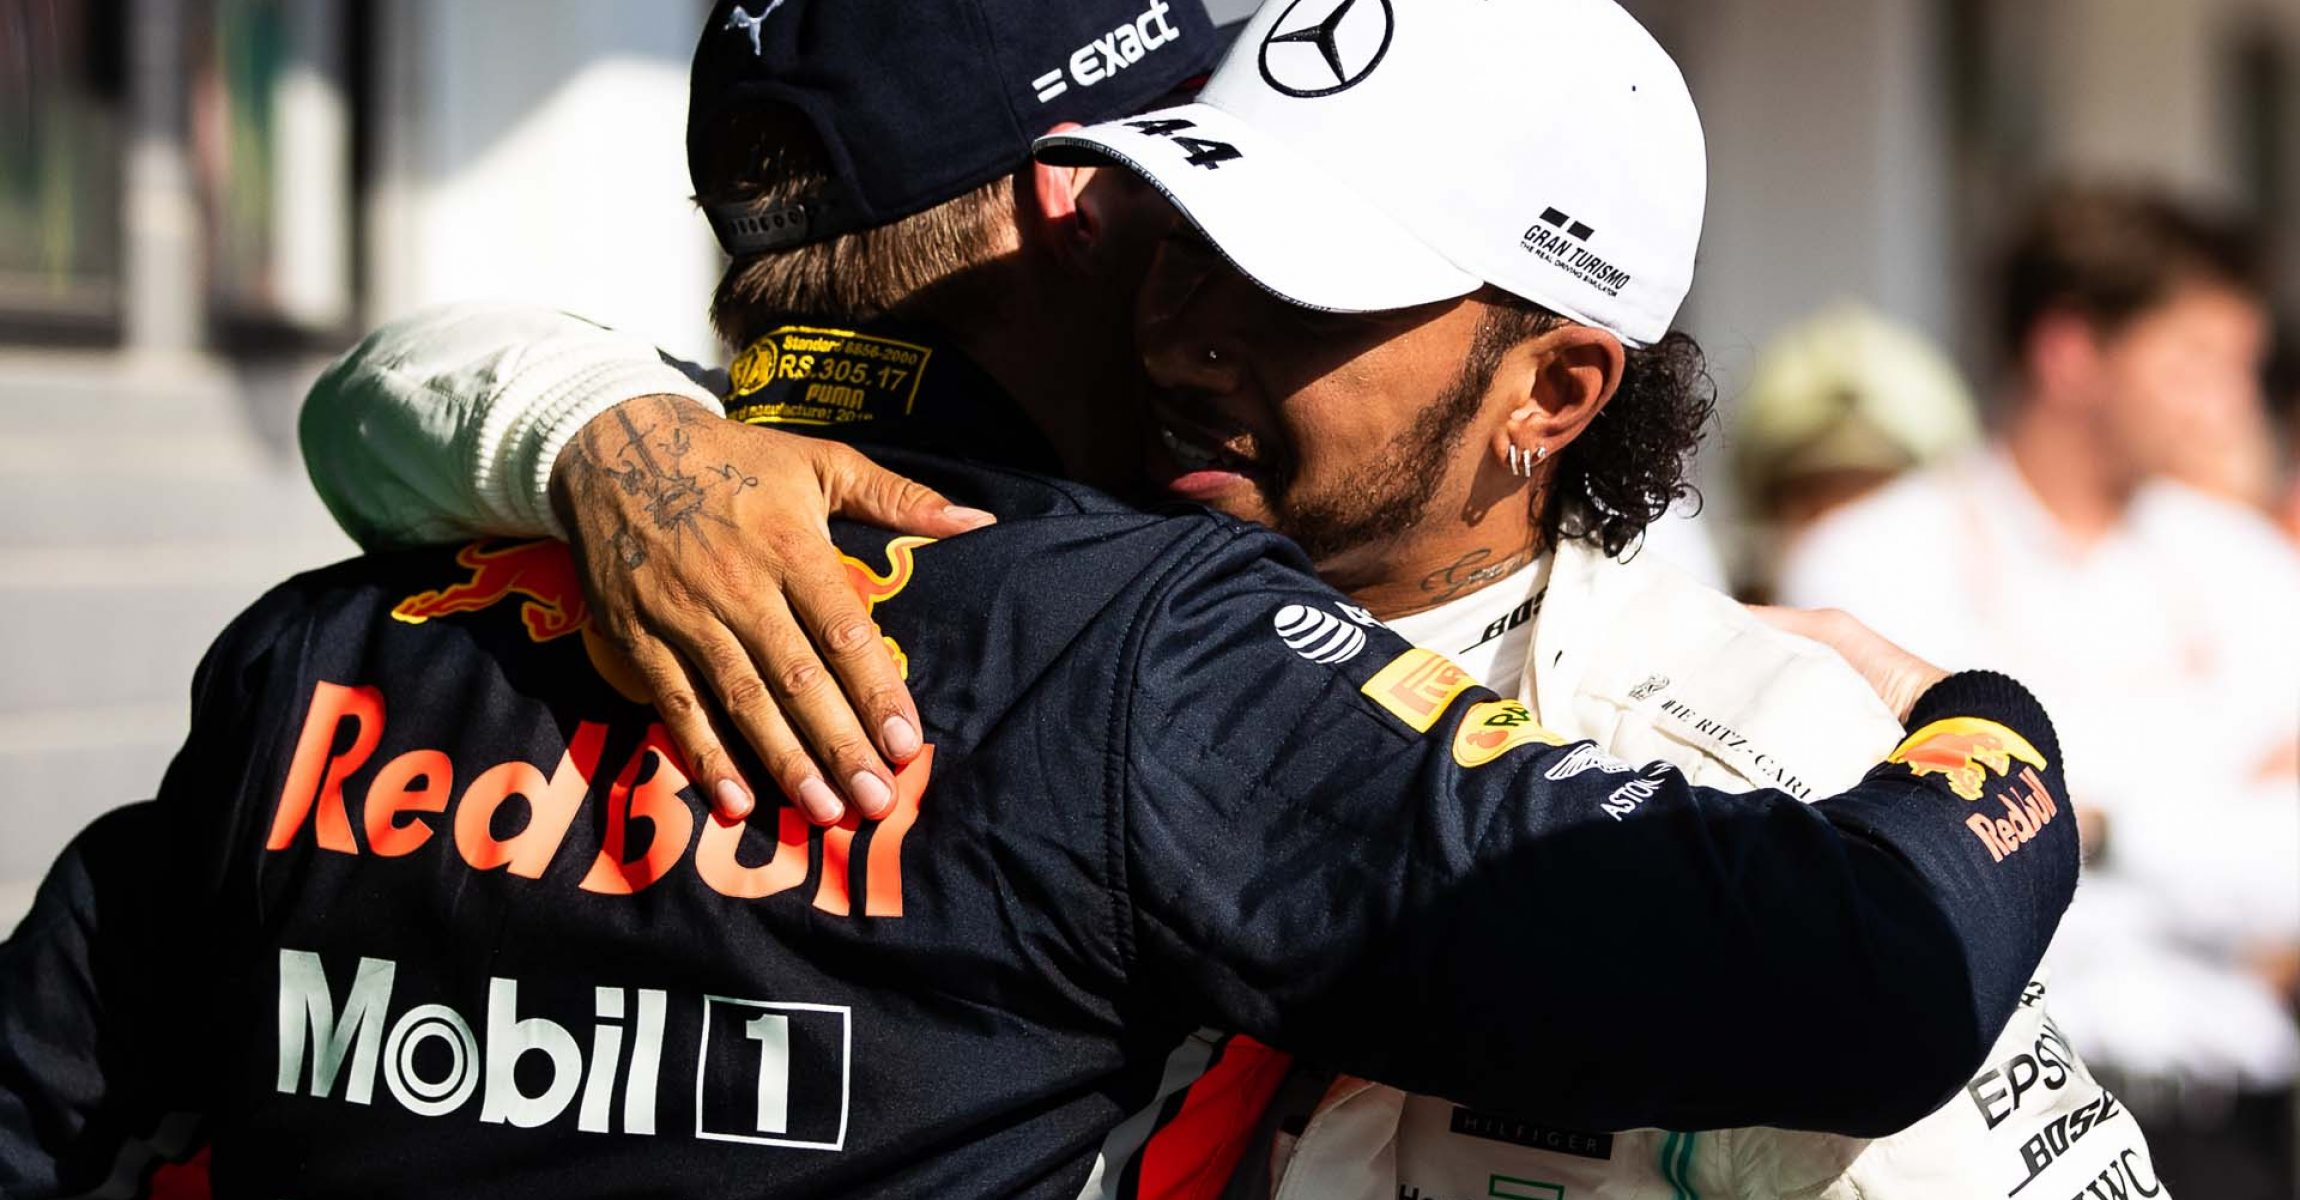 BUDAPEST, HUNGARY - AUGUST 04: Race winner Lewis Hamilton of Great Britain and Mercedes GP and second placed Max Verstappen of Netherlands and Red Bull Racing celebrate in parc ferme during the F1 Grand Prix of Hungary at Hungaroring on August 04, 2019 in Budapest, Hungary. (Photo by Lars Baron/Getty Images) // Getty Images / Red Bull Content Pool  // AP-215JEBSK11W11 // Usage for editorial use only // Please go to www.redbullcontentpool.com for further information. //